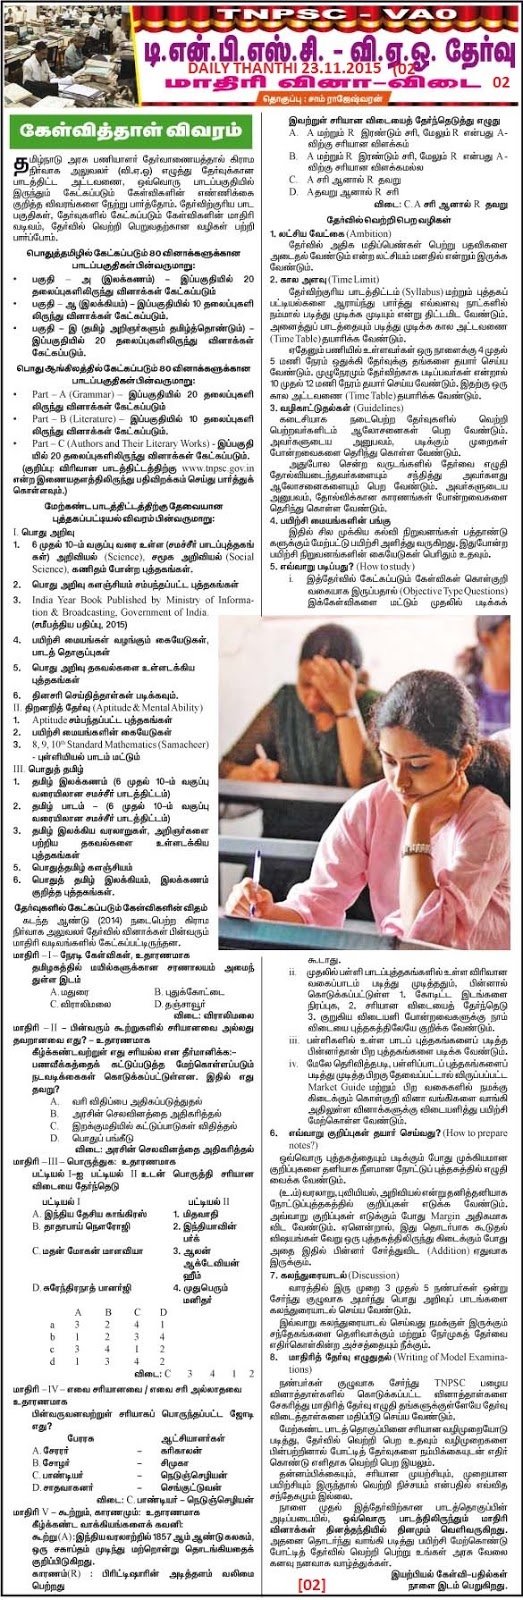 Model Questions and Answers for   TNPSC VAO Exam 2015  23.11.2015  Daily Thanthi Series (02)    Courtesy : Daily Thanthi